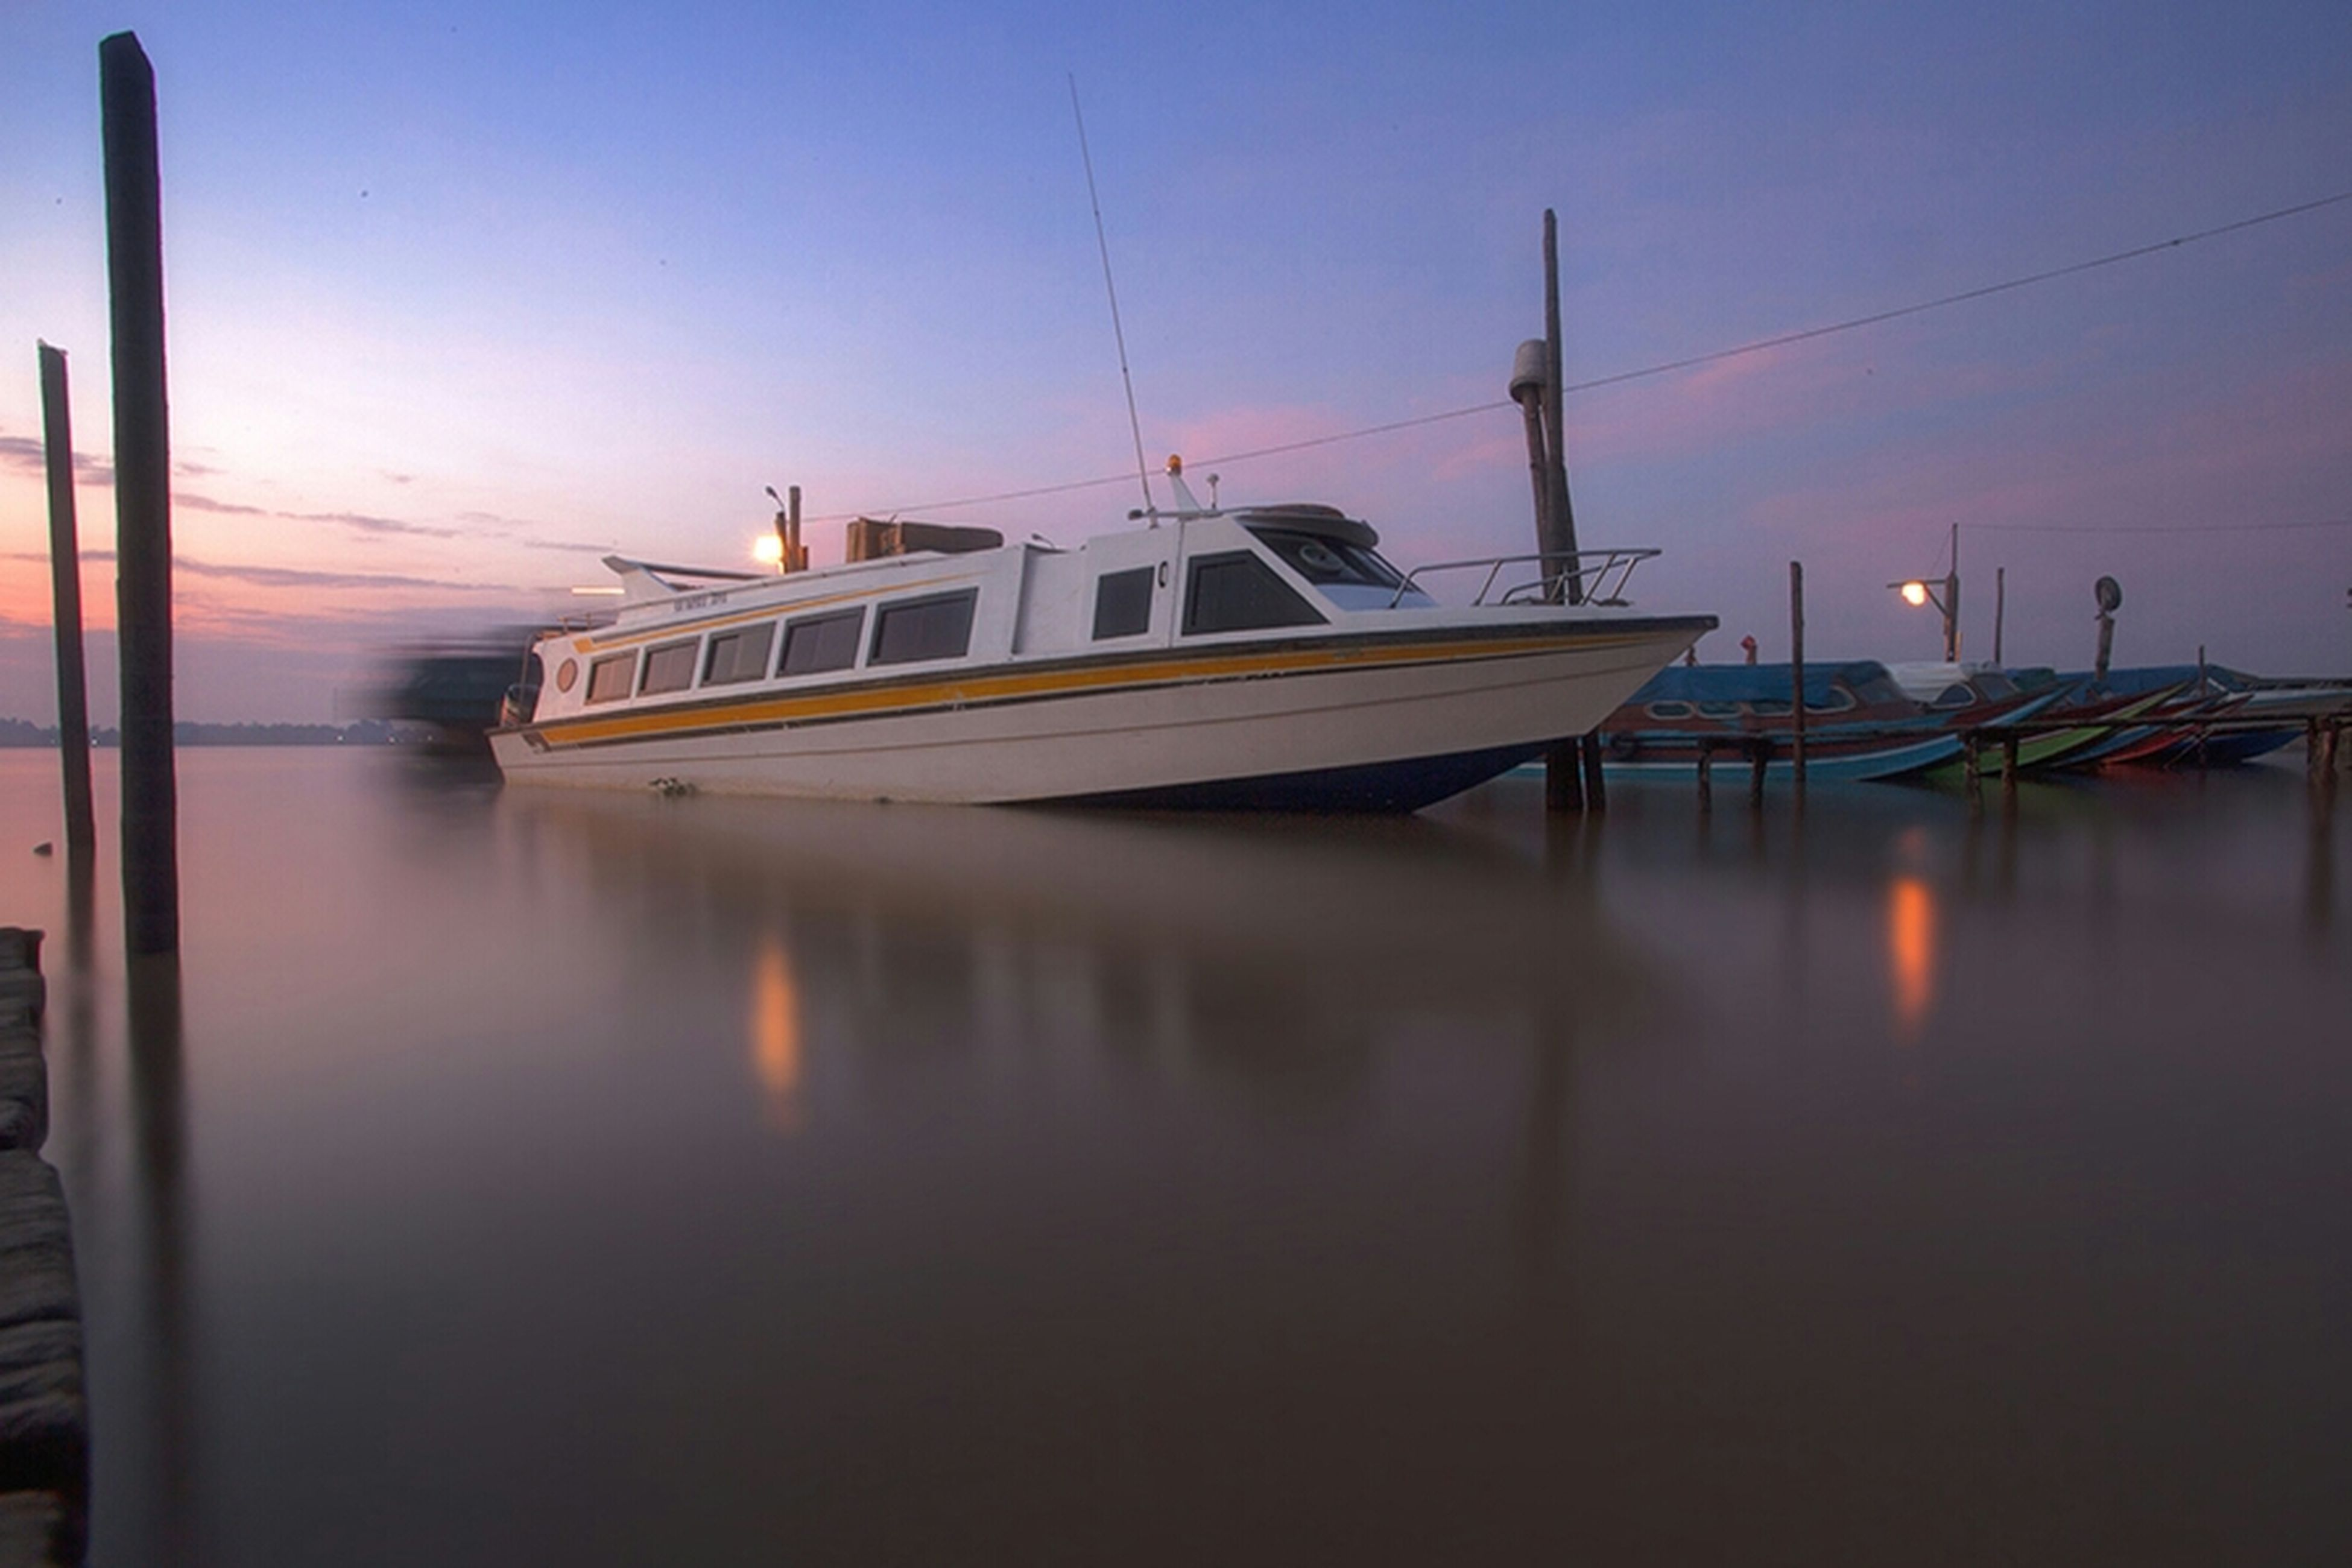 transportation, nautical vessel, boat, mode of transport, water, moored, sunset, reflection, waterfront, sky, sea, mast, travel, sailboat, harbor, nature, outdoors, river, no people, lake